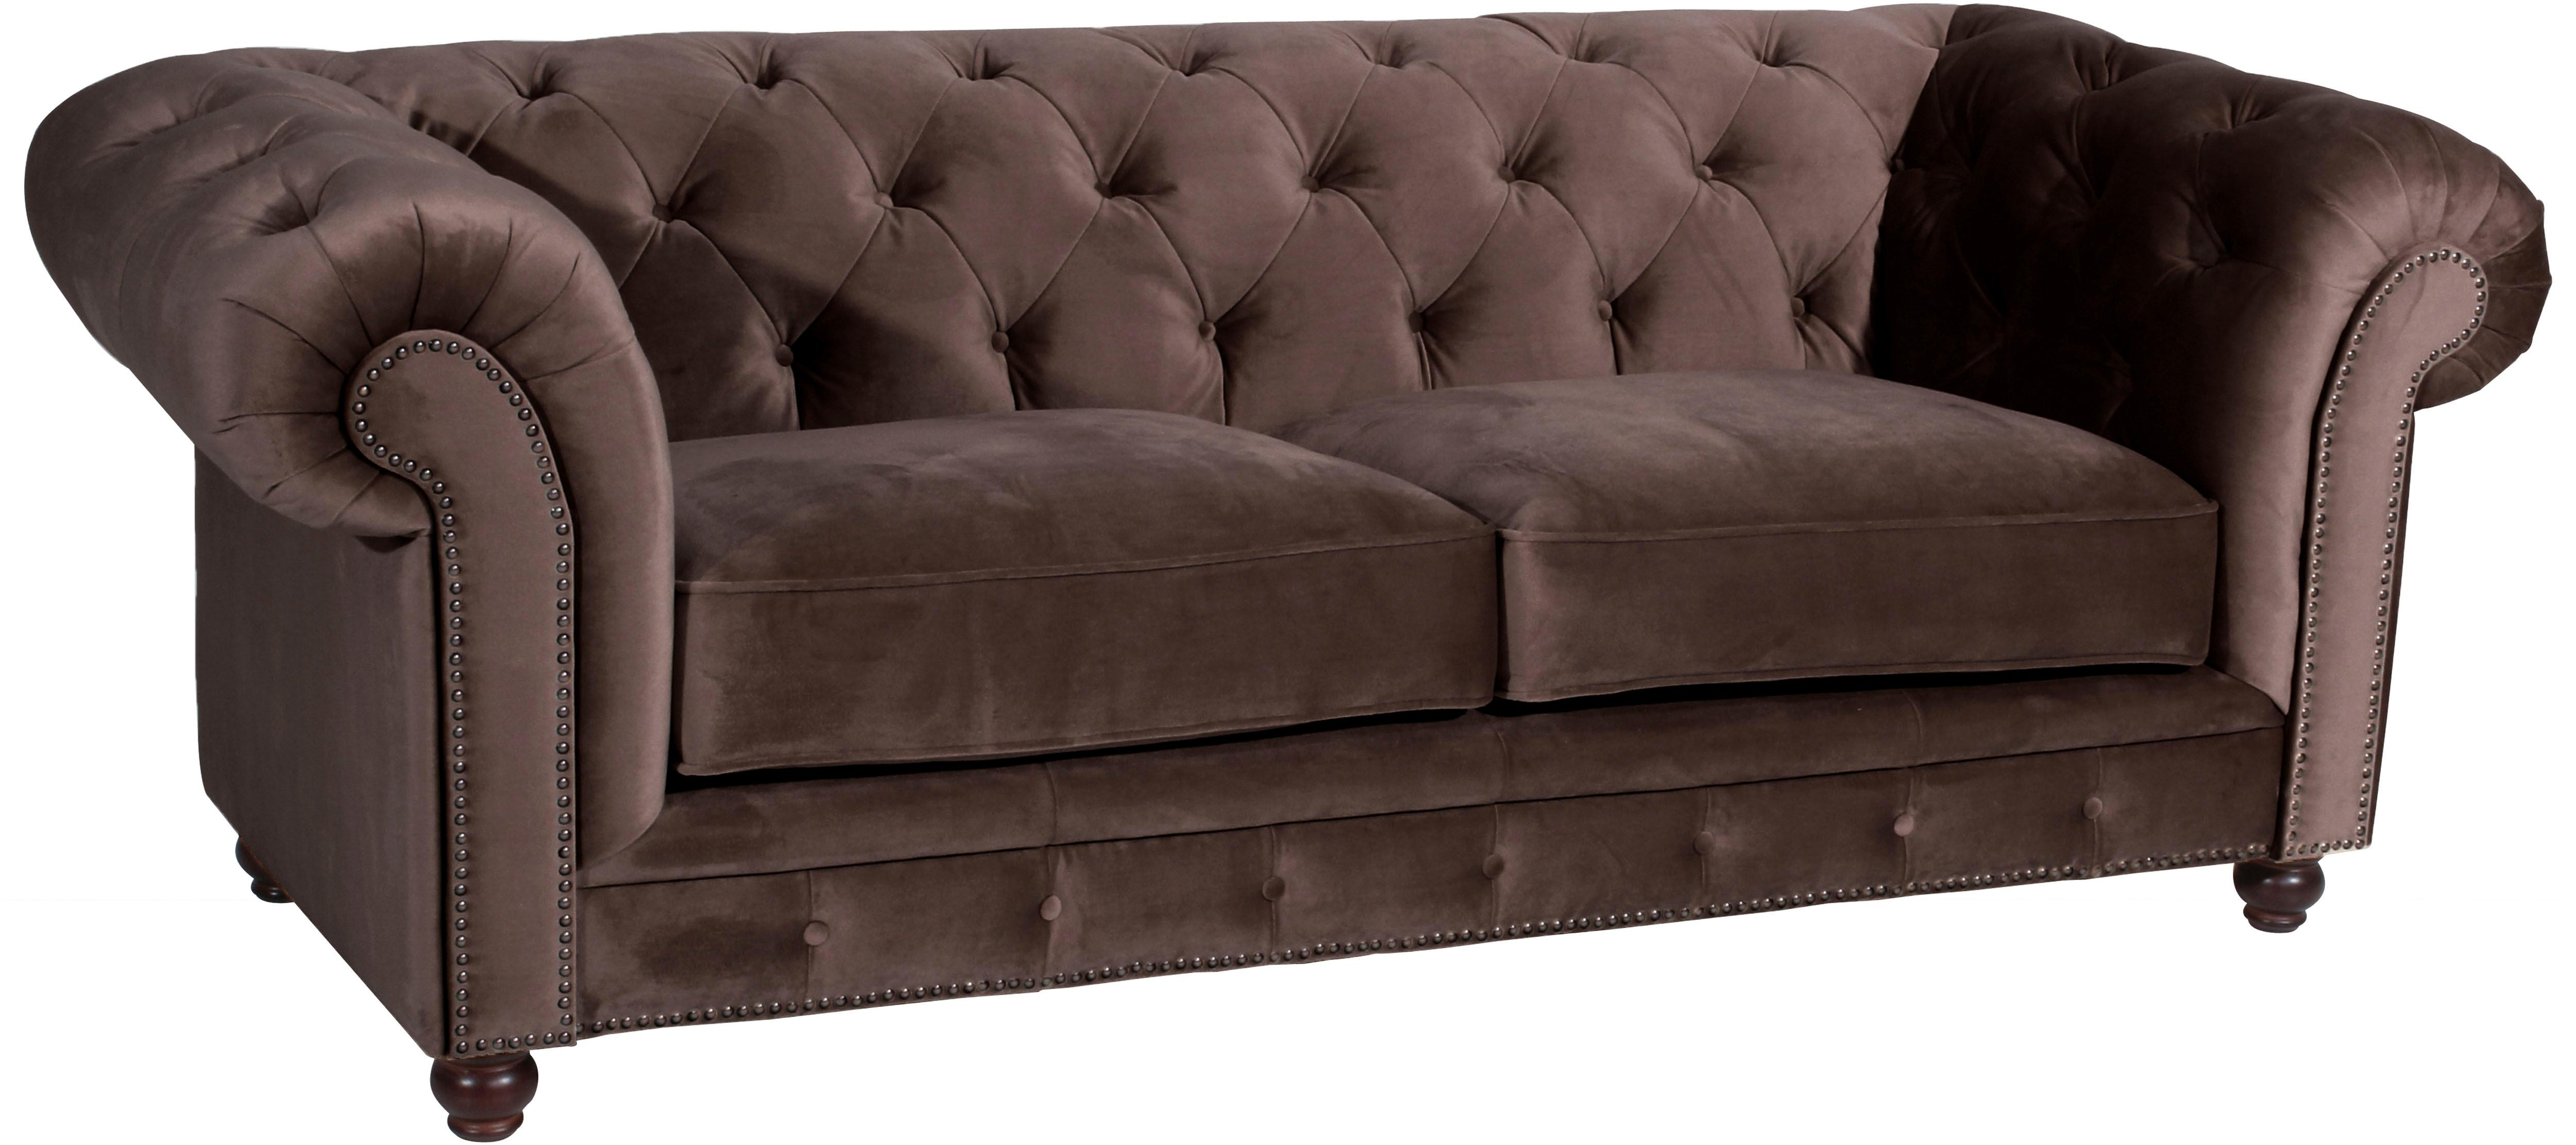 Max Winzer Chesterfield-Sofa Old England   Wohnzimmer > Sofas & Couches > Chesterfield Sofas   Max Winzer